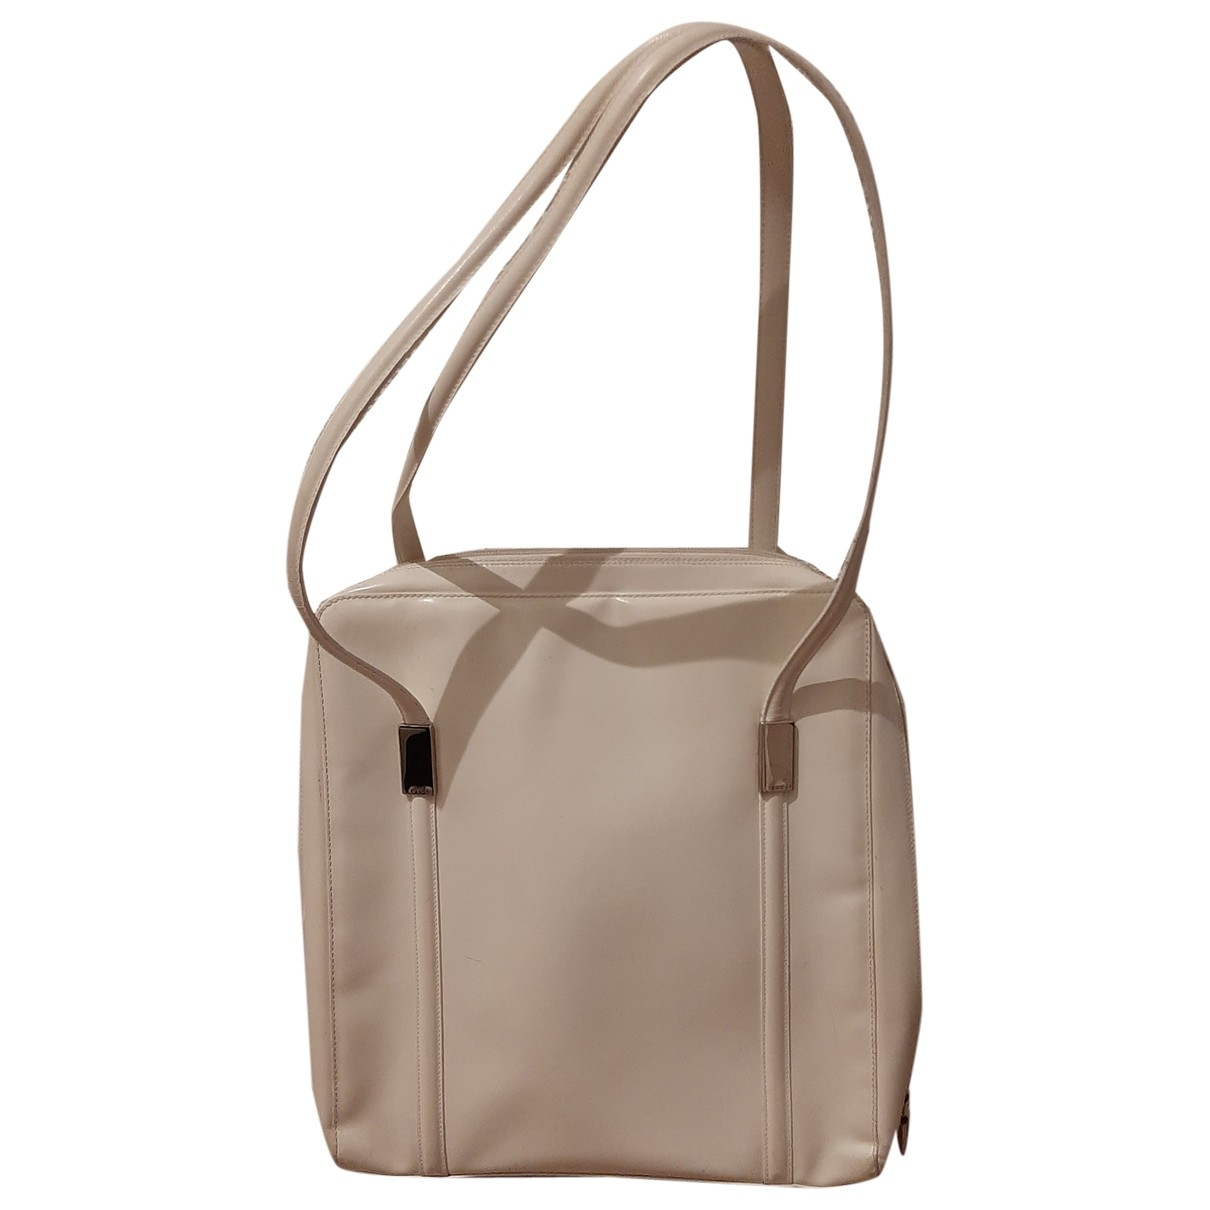 Gucci \N White Patent leather handbag for Women \N